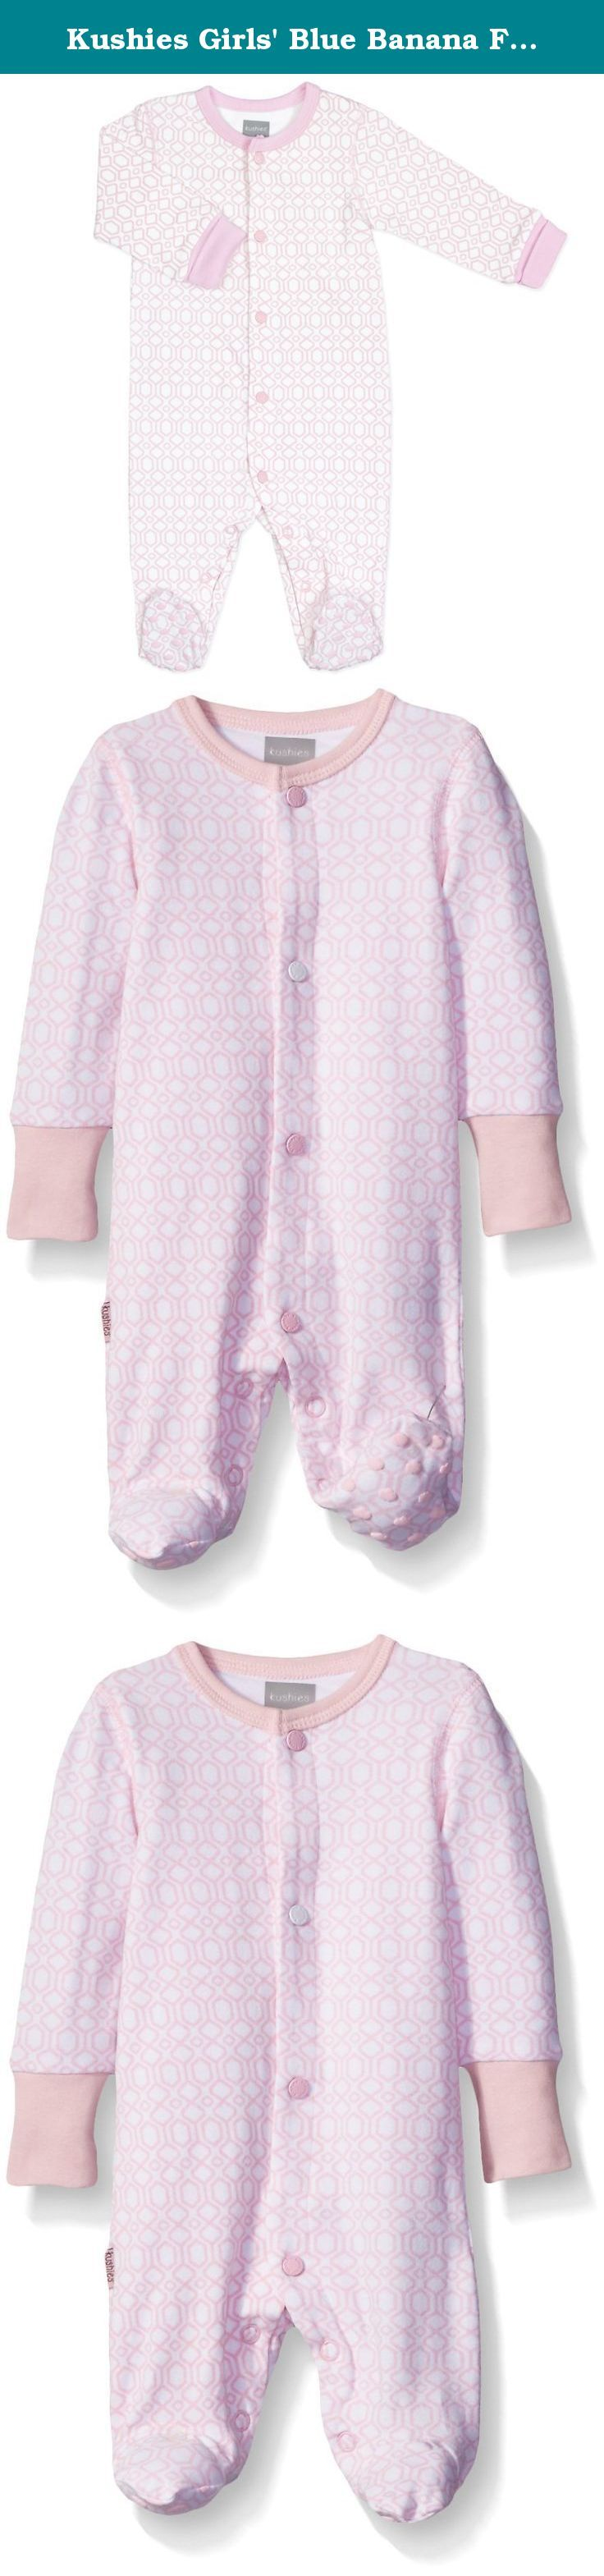 Kushies Girls' Blue Banana Floral Bow Footie Pajamas Footed Sleeper Baby Pajamas, Light Pink, 06 Months. Made of 95 percent cotton and 5 percent lycra for comfort and softness, this geo baby front snap sleeper stands out in a crowd. The Kushies sleeper offers a snap front closure and built-in feet to keep your baby's little feet cozy and warm.